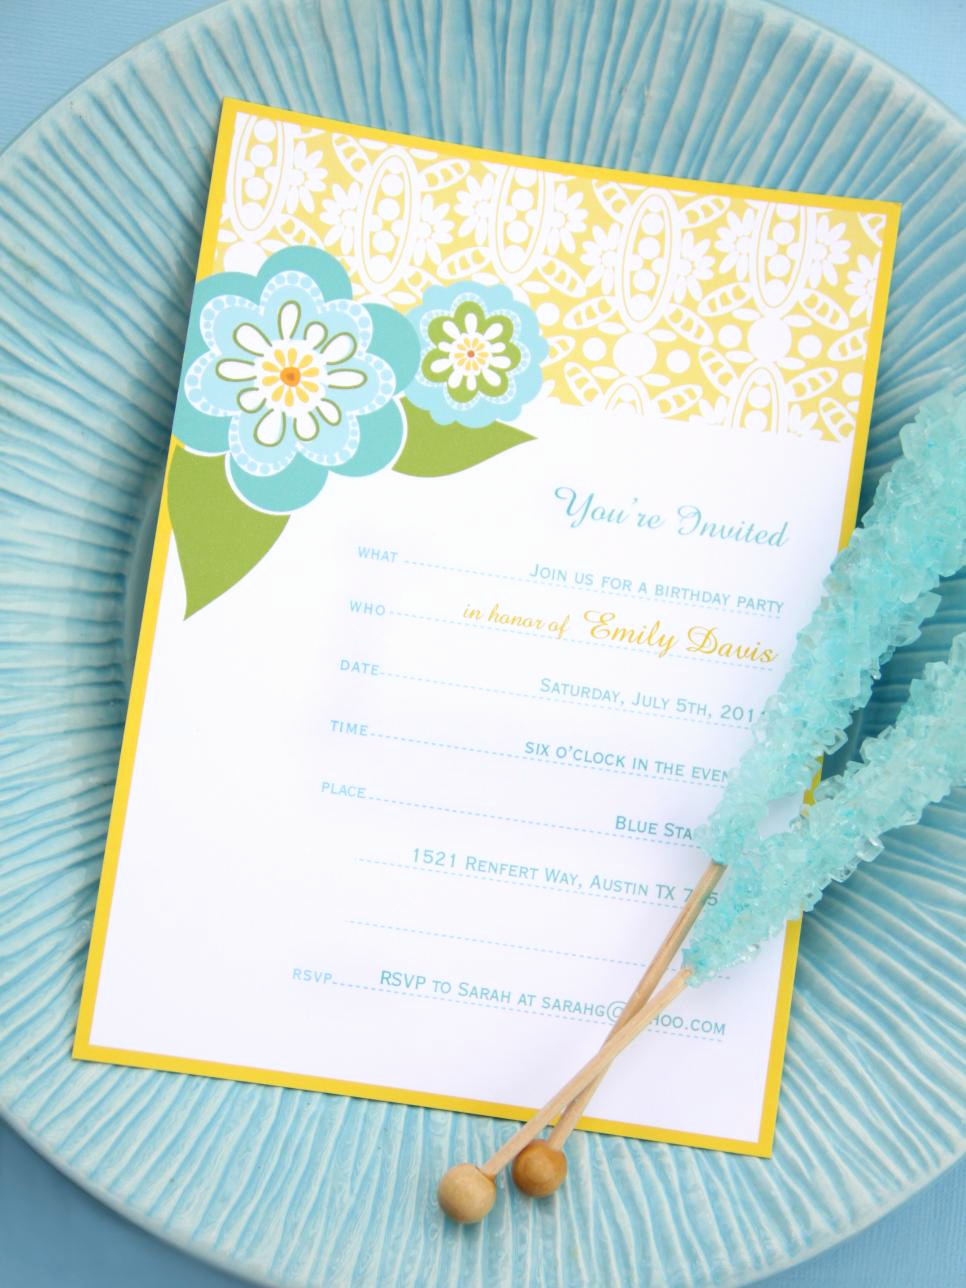 Printable Birthday Invitation Cards Lovely 16 Free Printable Party Invitations for Any Occasion